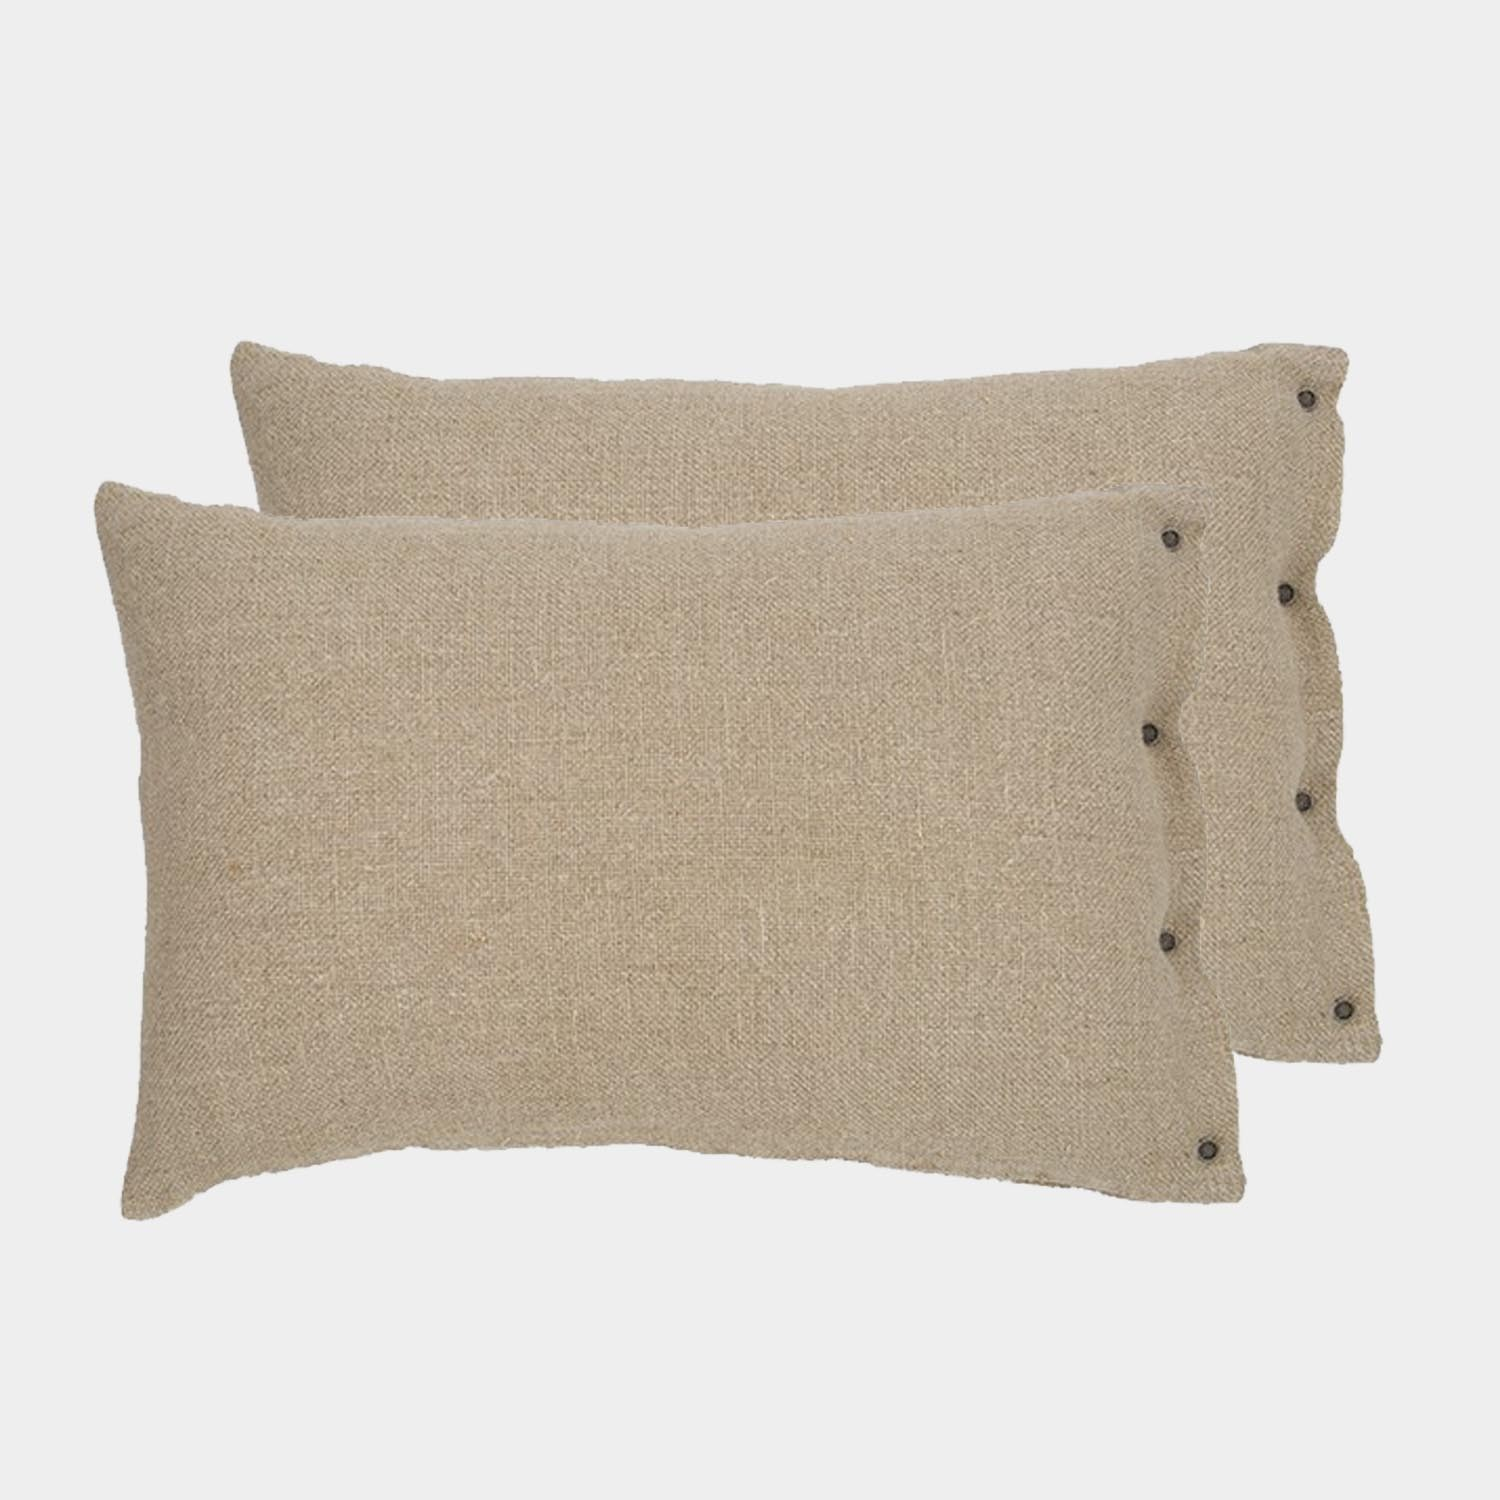 Pair of Rustic Linen Cushion Covers Natural